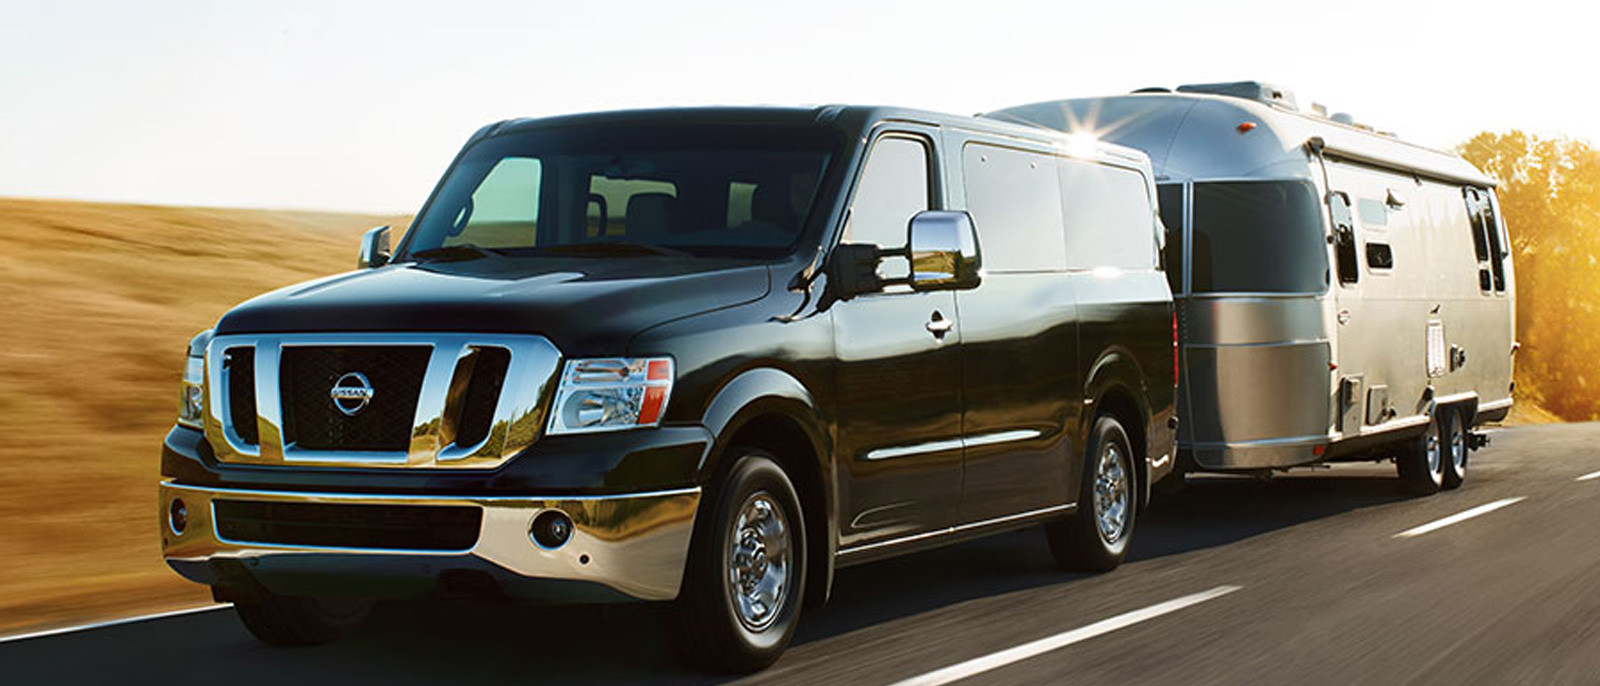 Commercial Vehicles For Sale Near Sacramento Ca Nissan